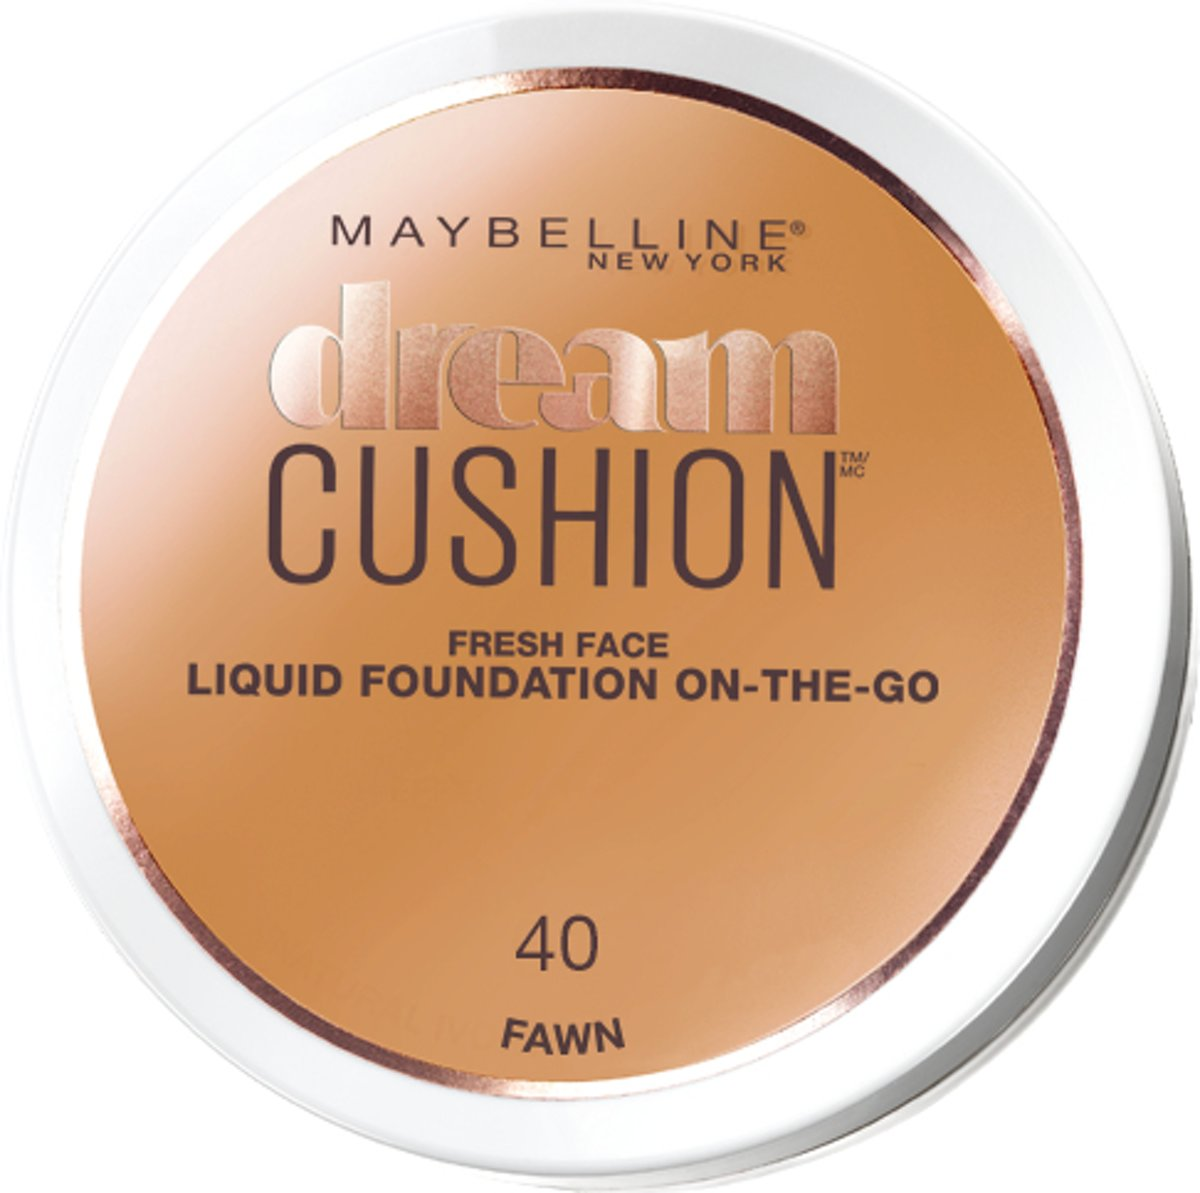 Maybelline Dream Cushion Foundation - 40 Fawn - Foundation